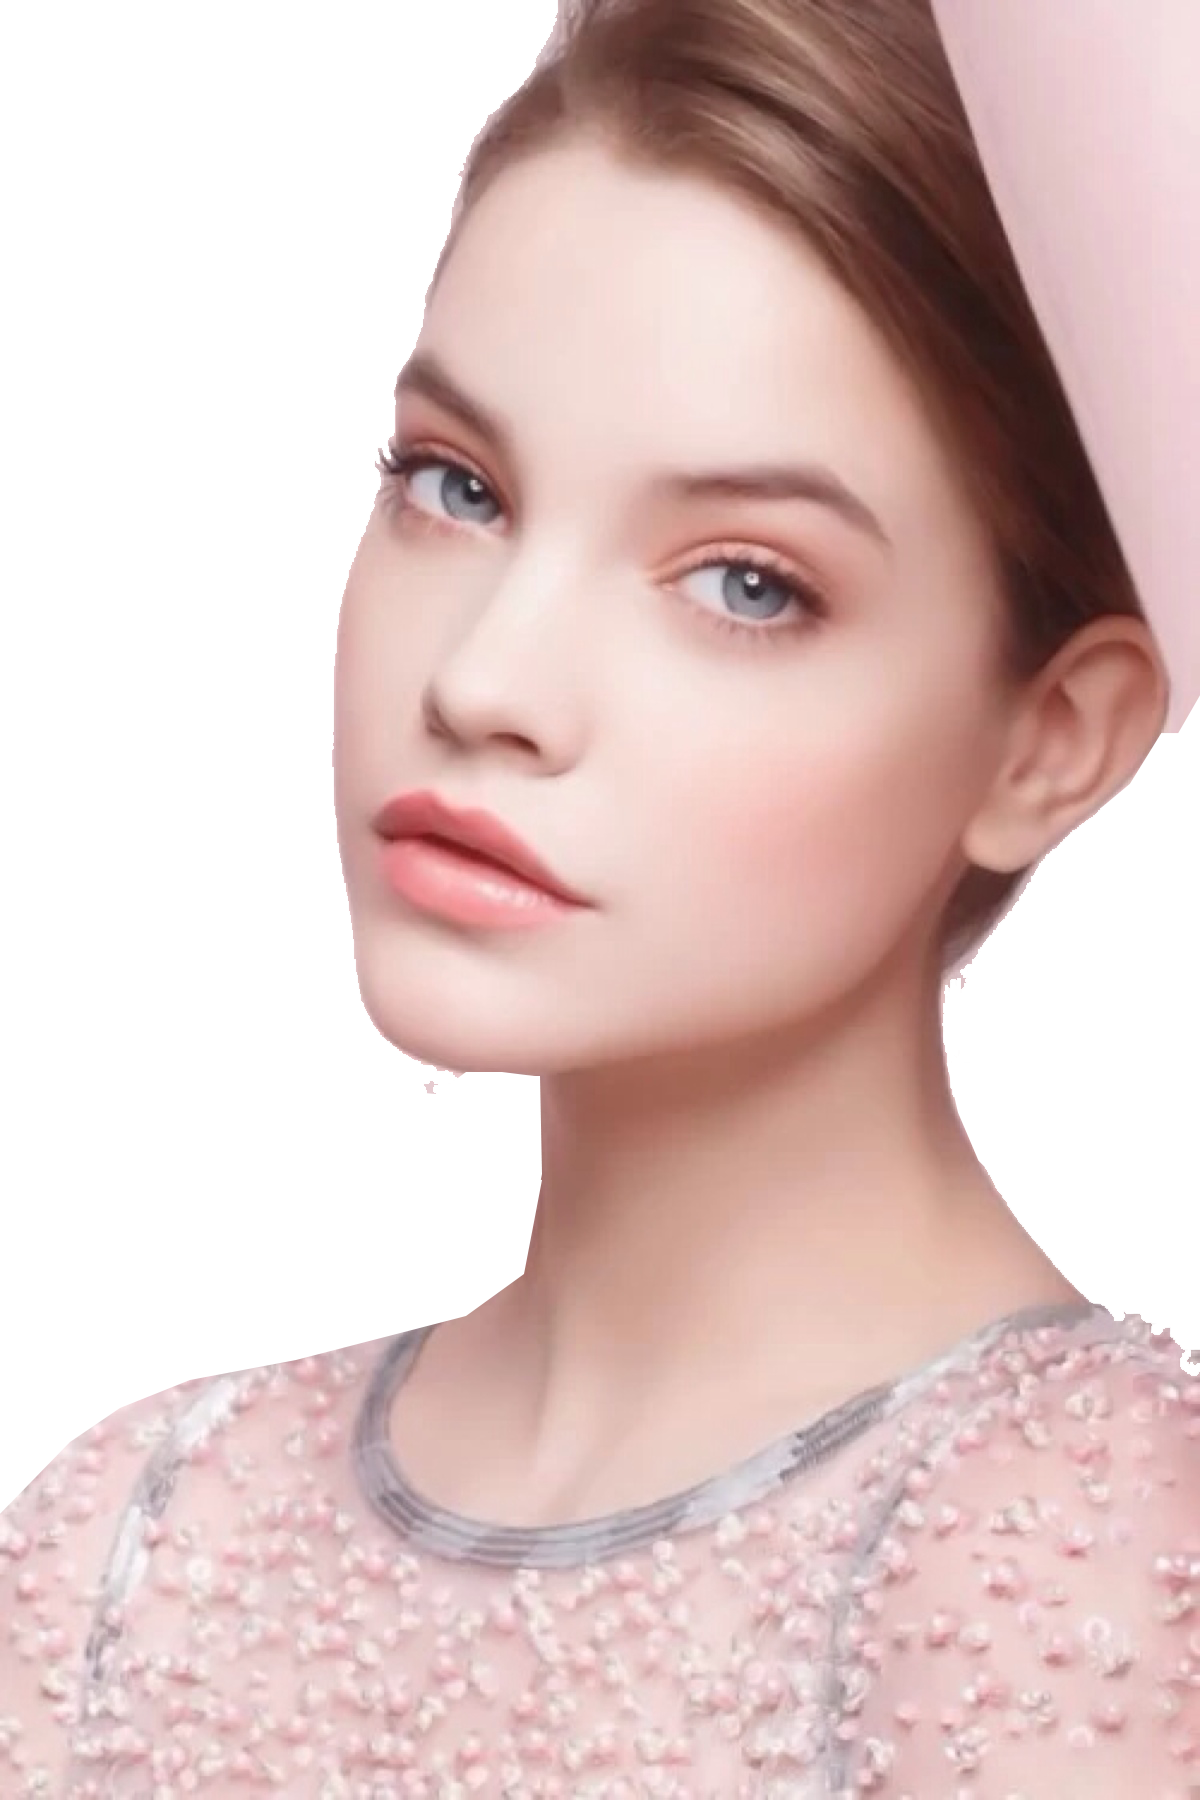 Cute Hairstyle Eye Makeup Palvin Model Cosmetics PNG Image